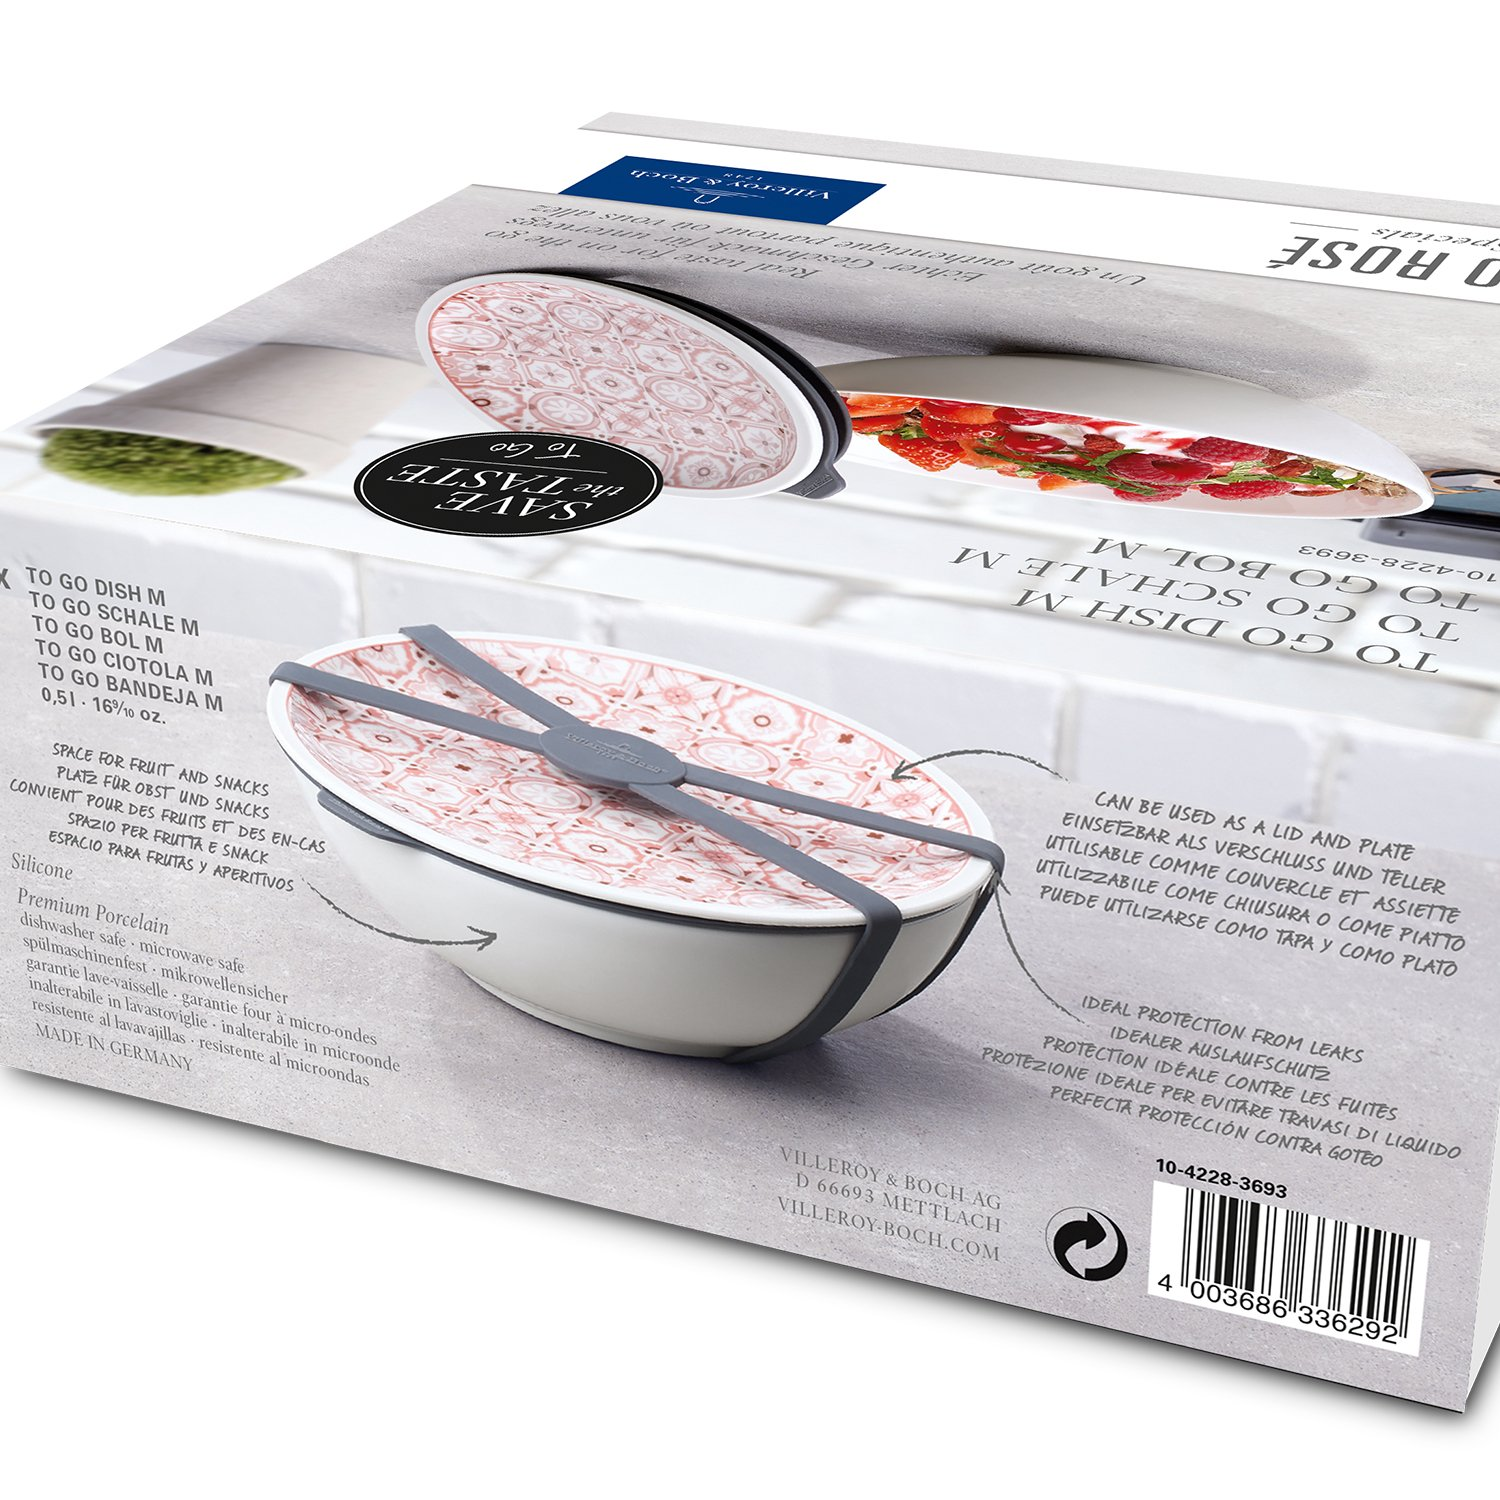 Amazon.com: Villeroy & Boch to Go Rose Medium Dish Dishes ...